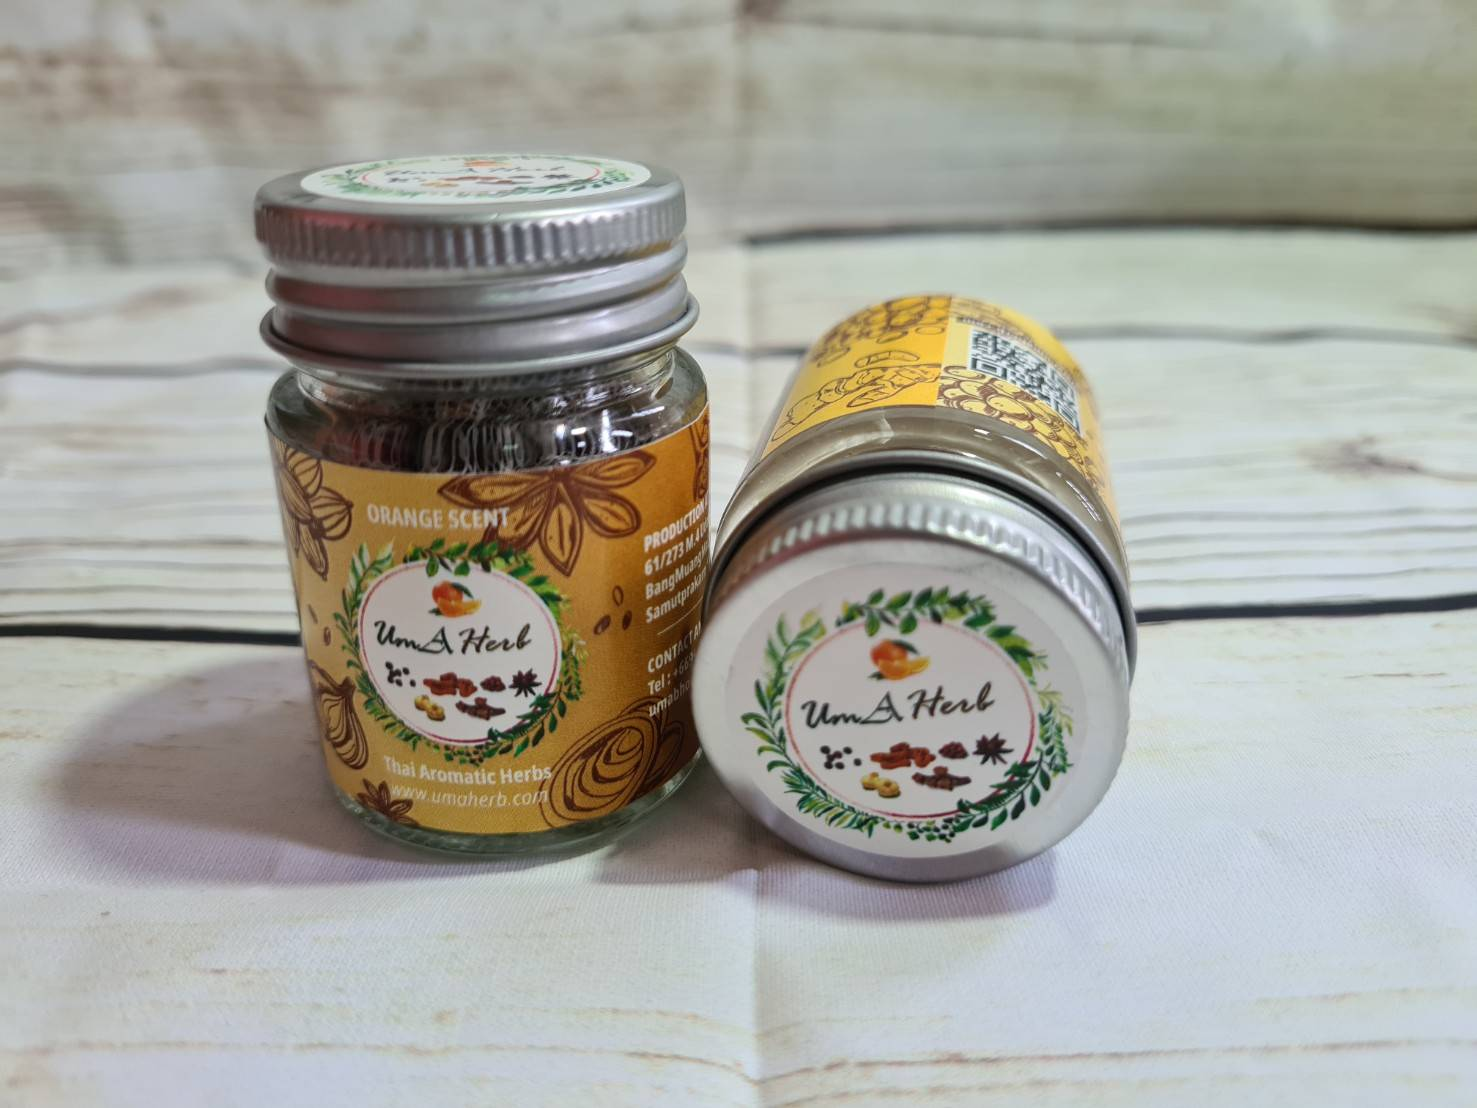 Uma Herb Thai Aromatic Herbs Orange Scent Inhaler Thai Herb Help To  Relax and Refresh Makes Breathing Easier